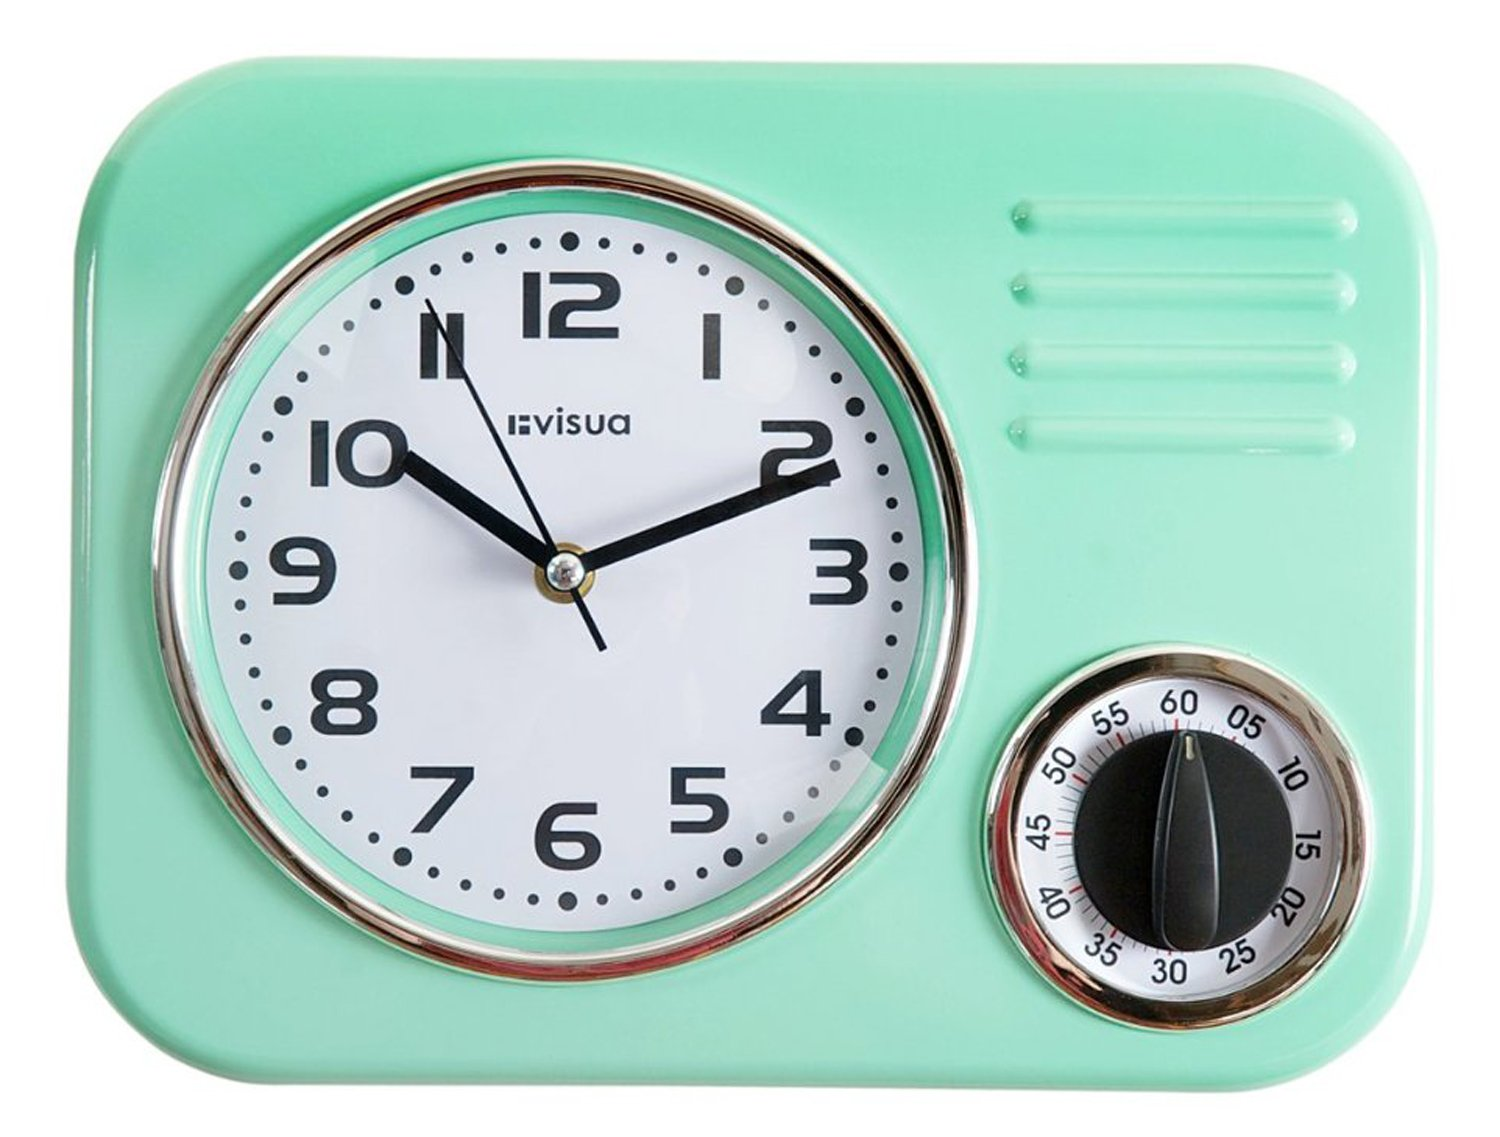 Visua Kira Retro Metal Kitchen Clock With Mechanical Timer, Lime Green:  Amazon.co.uk: Kitchen U0026 Home